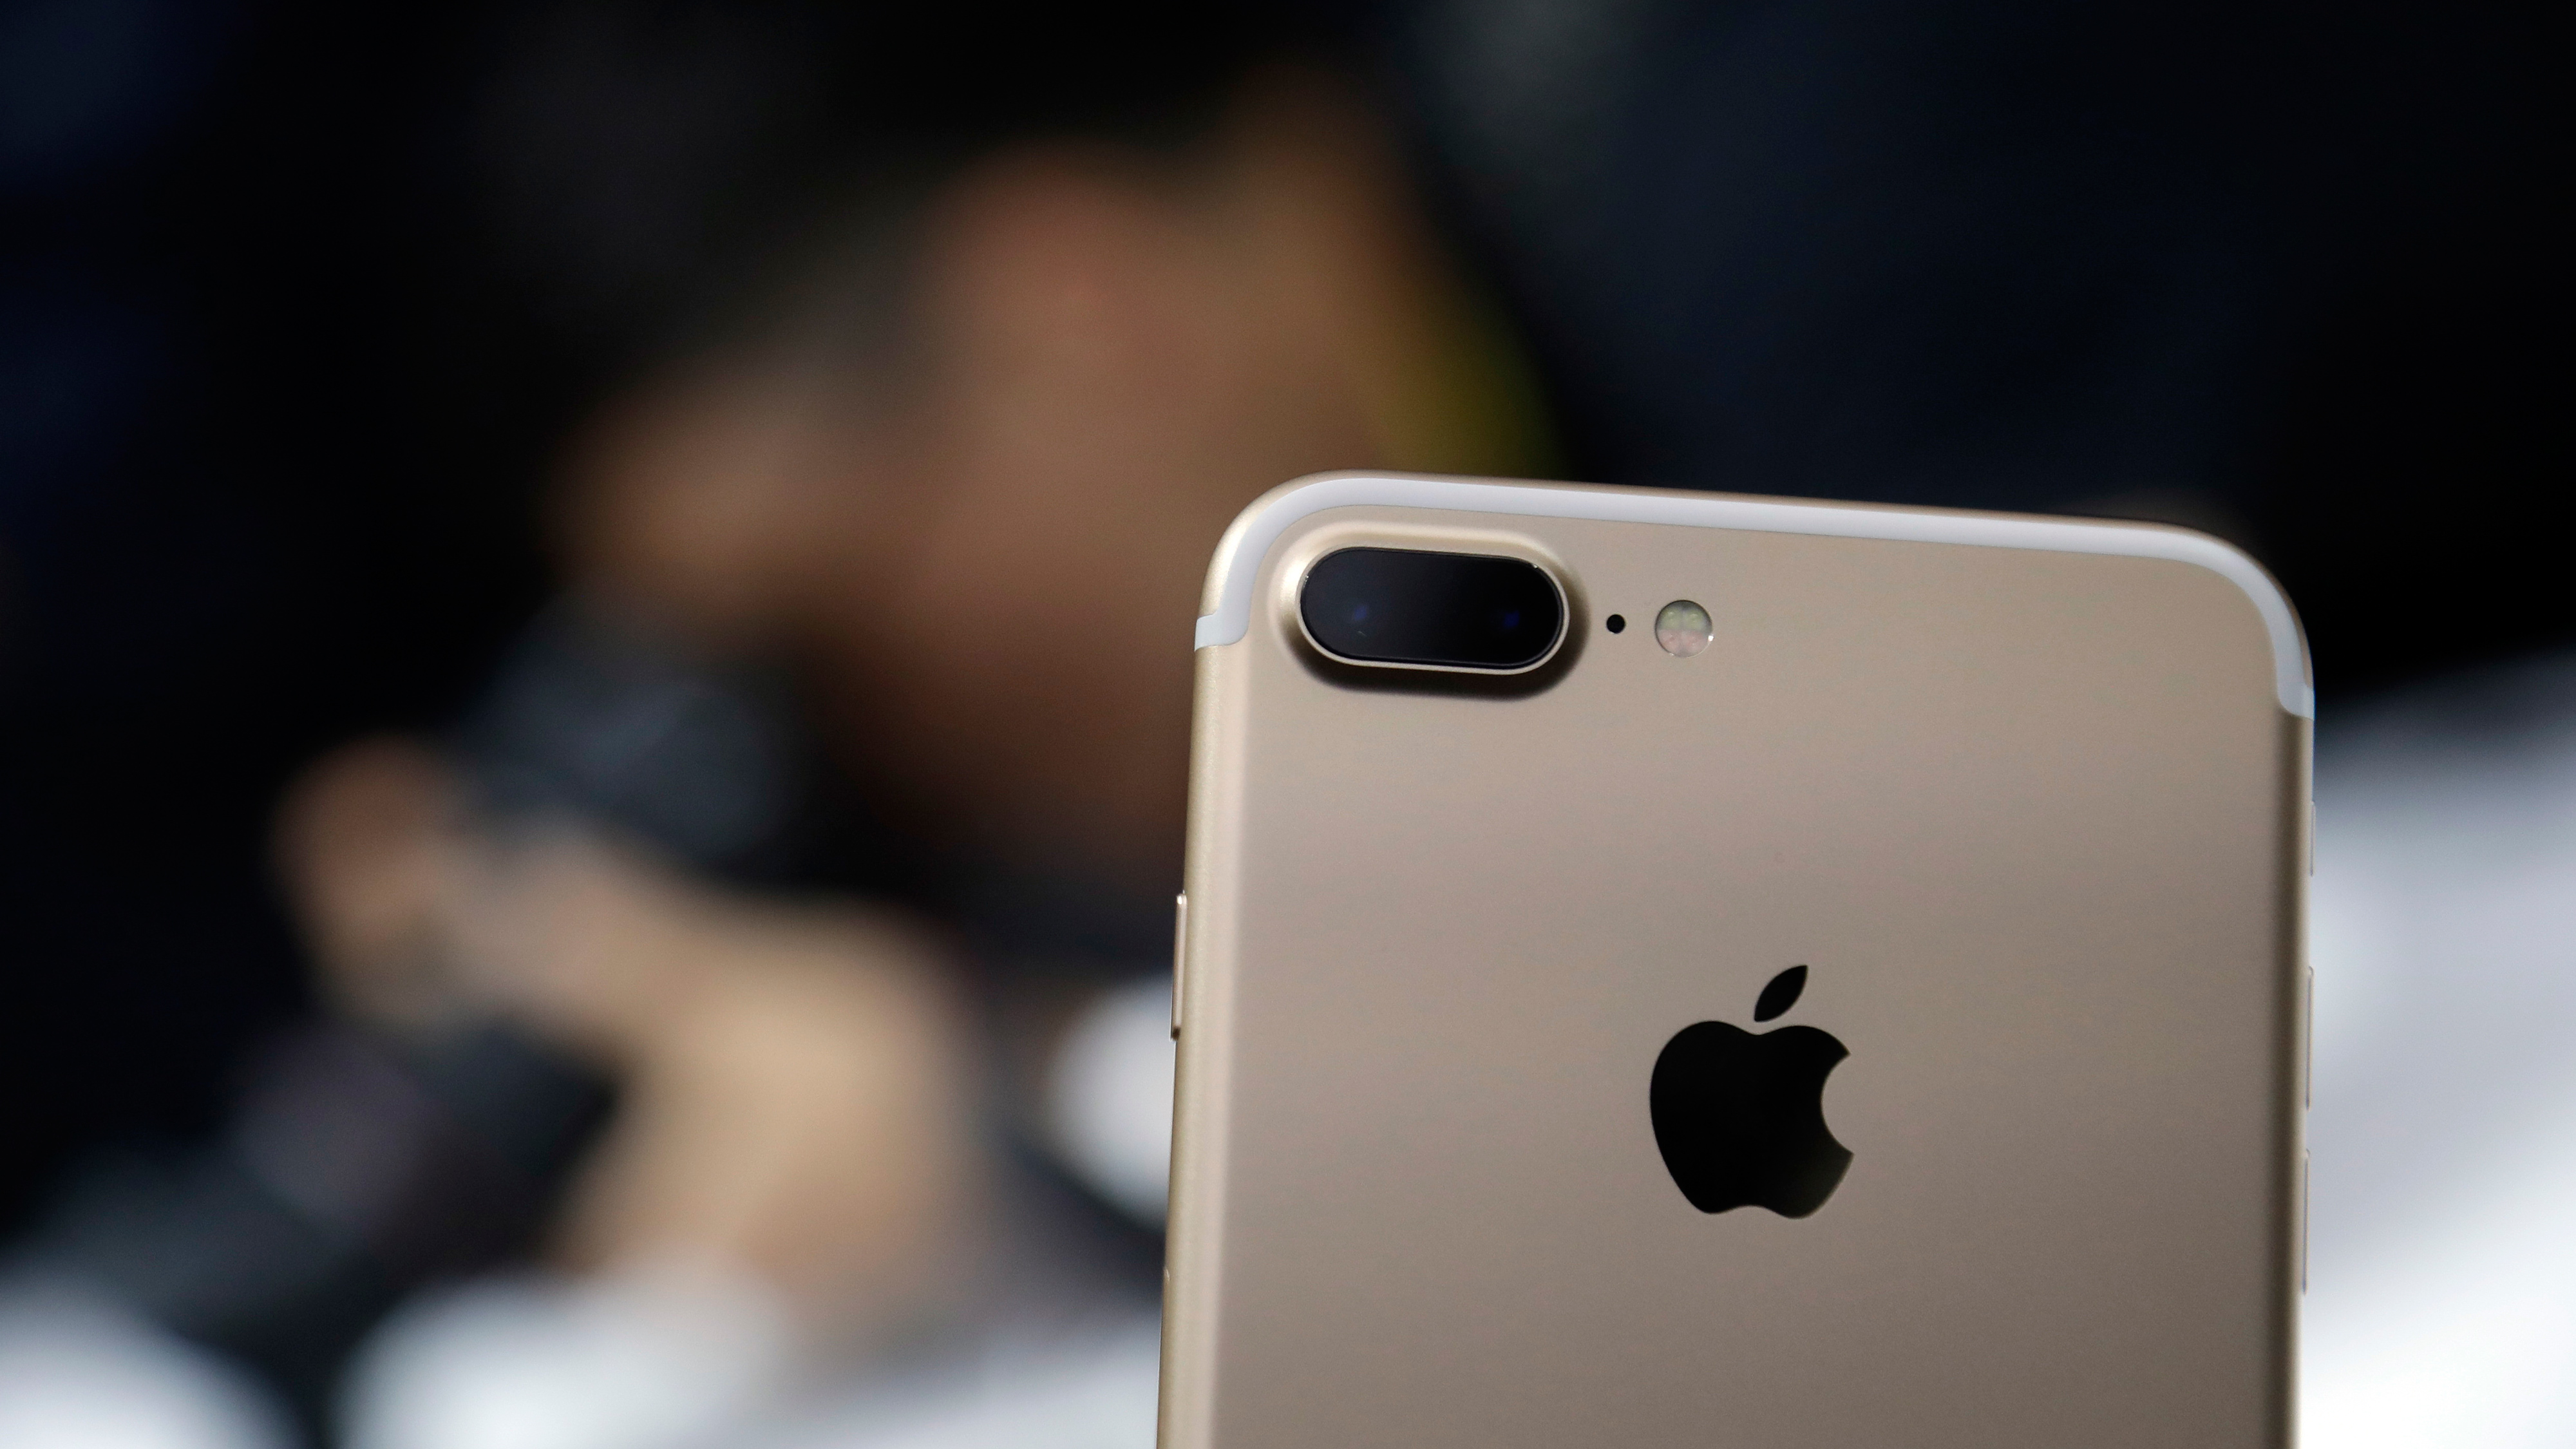 The dual camera feature on an iPhone 7 Plus is shown during an event to announce new Apple products on Wednesday, Sept. 7, 2016, in San Francisco. (AP Photo/Marcio Jose Sanchez)